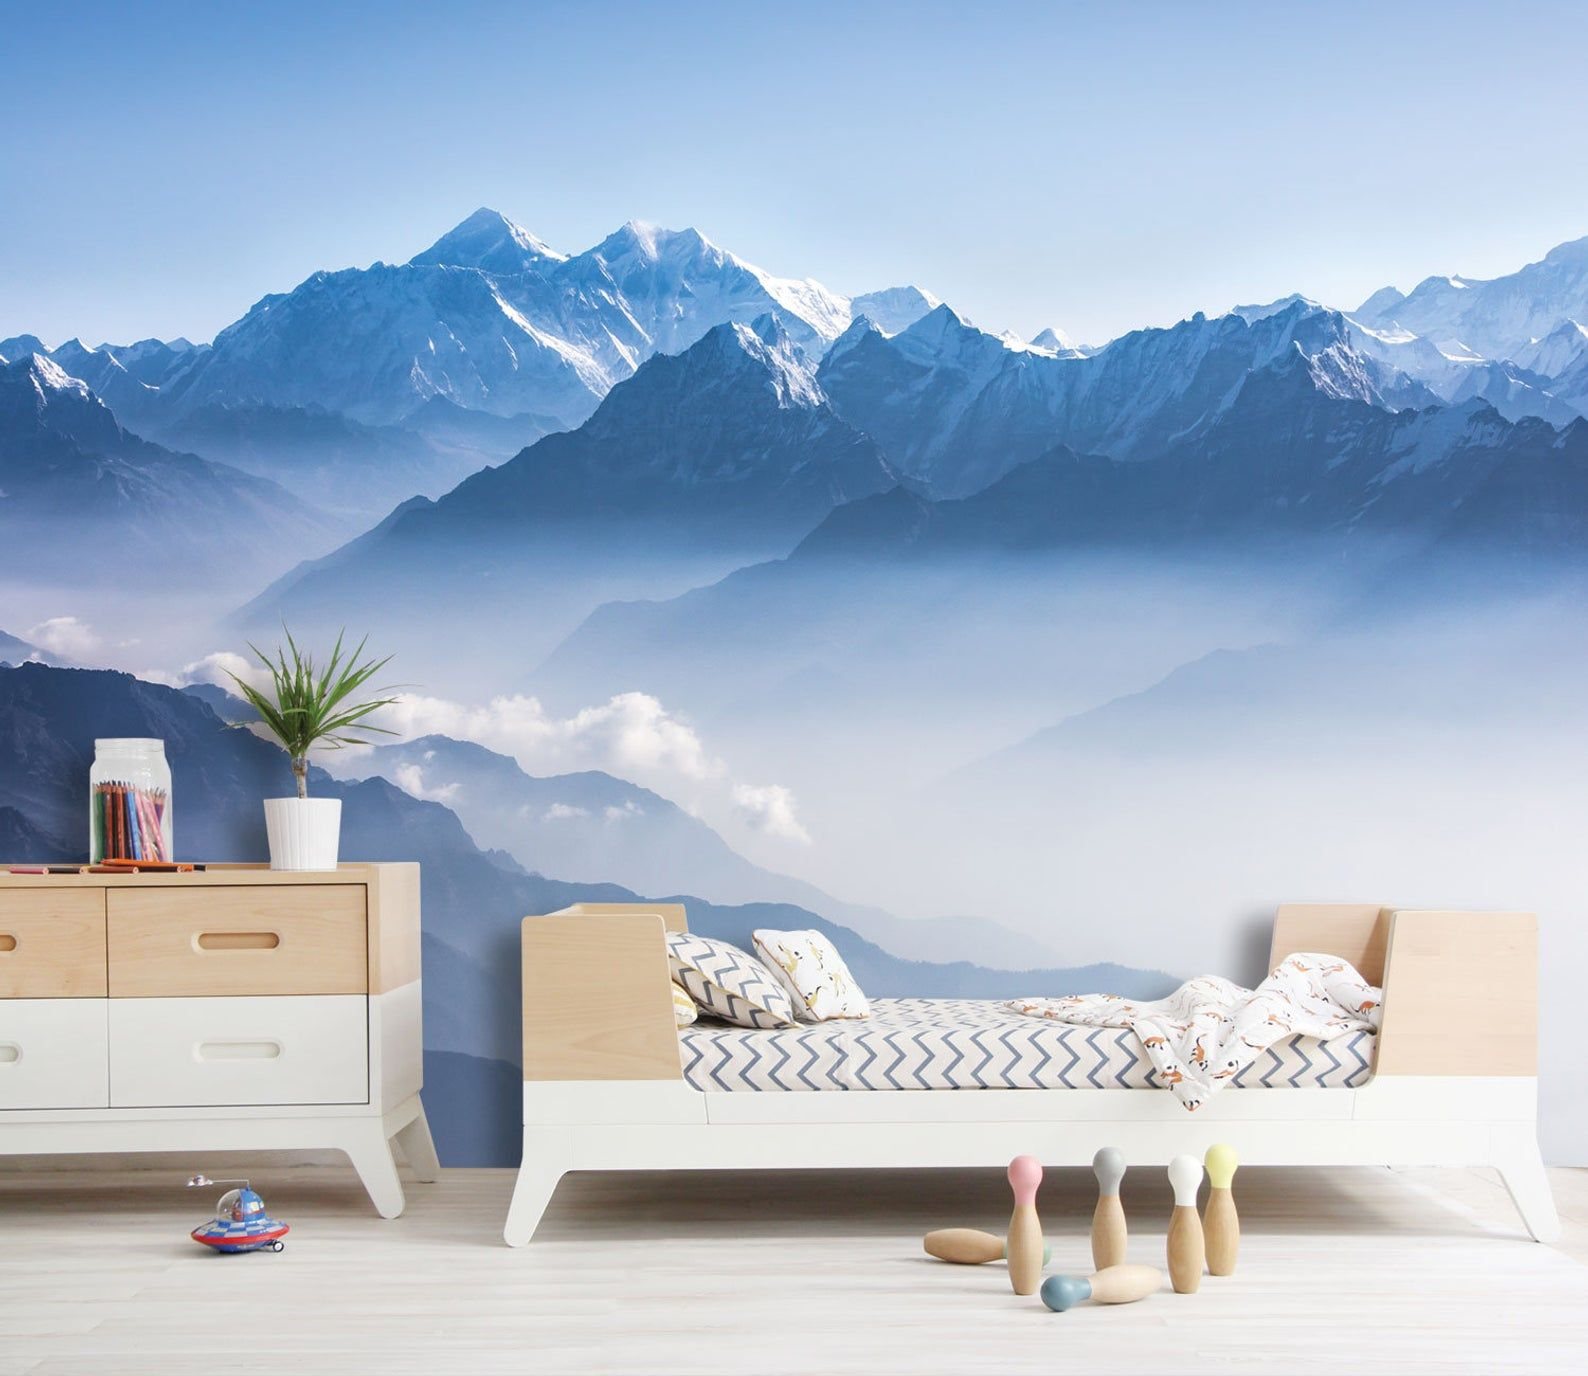 Scenic Mountains mural, Misty Mountain Shadow, Hazy